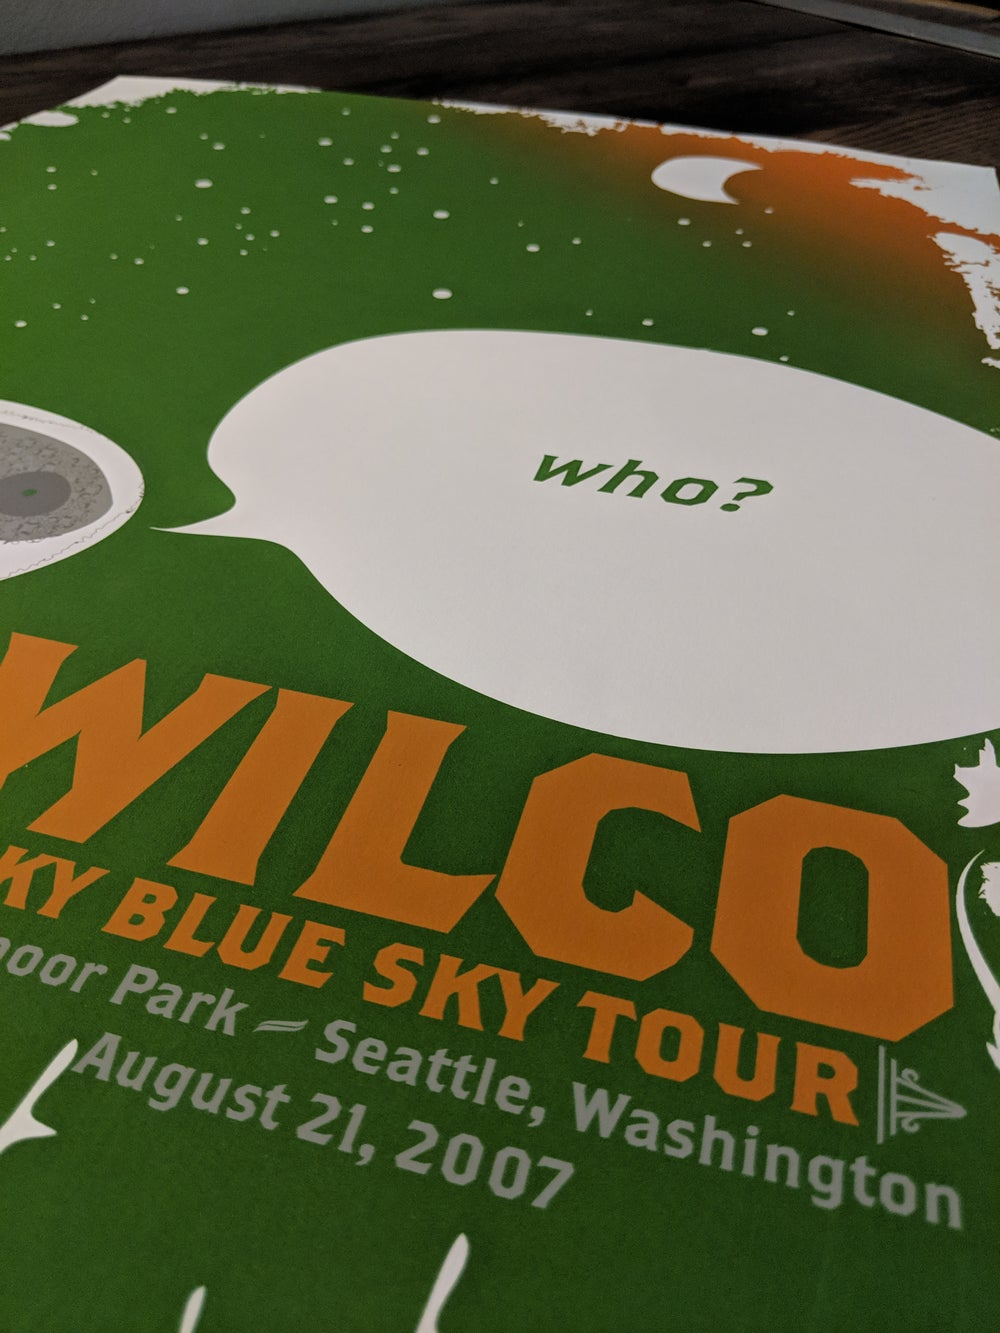 Wilco (Who?) Sky Blue Sky Tour **SPECIAL EDITION**